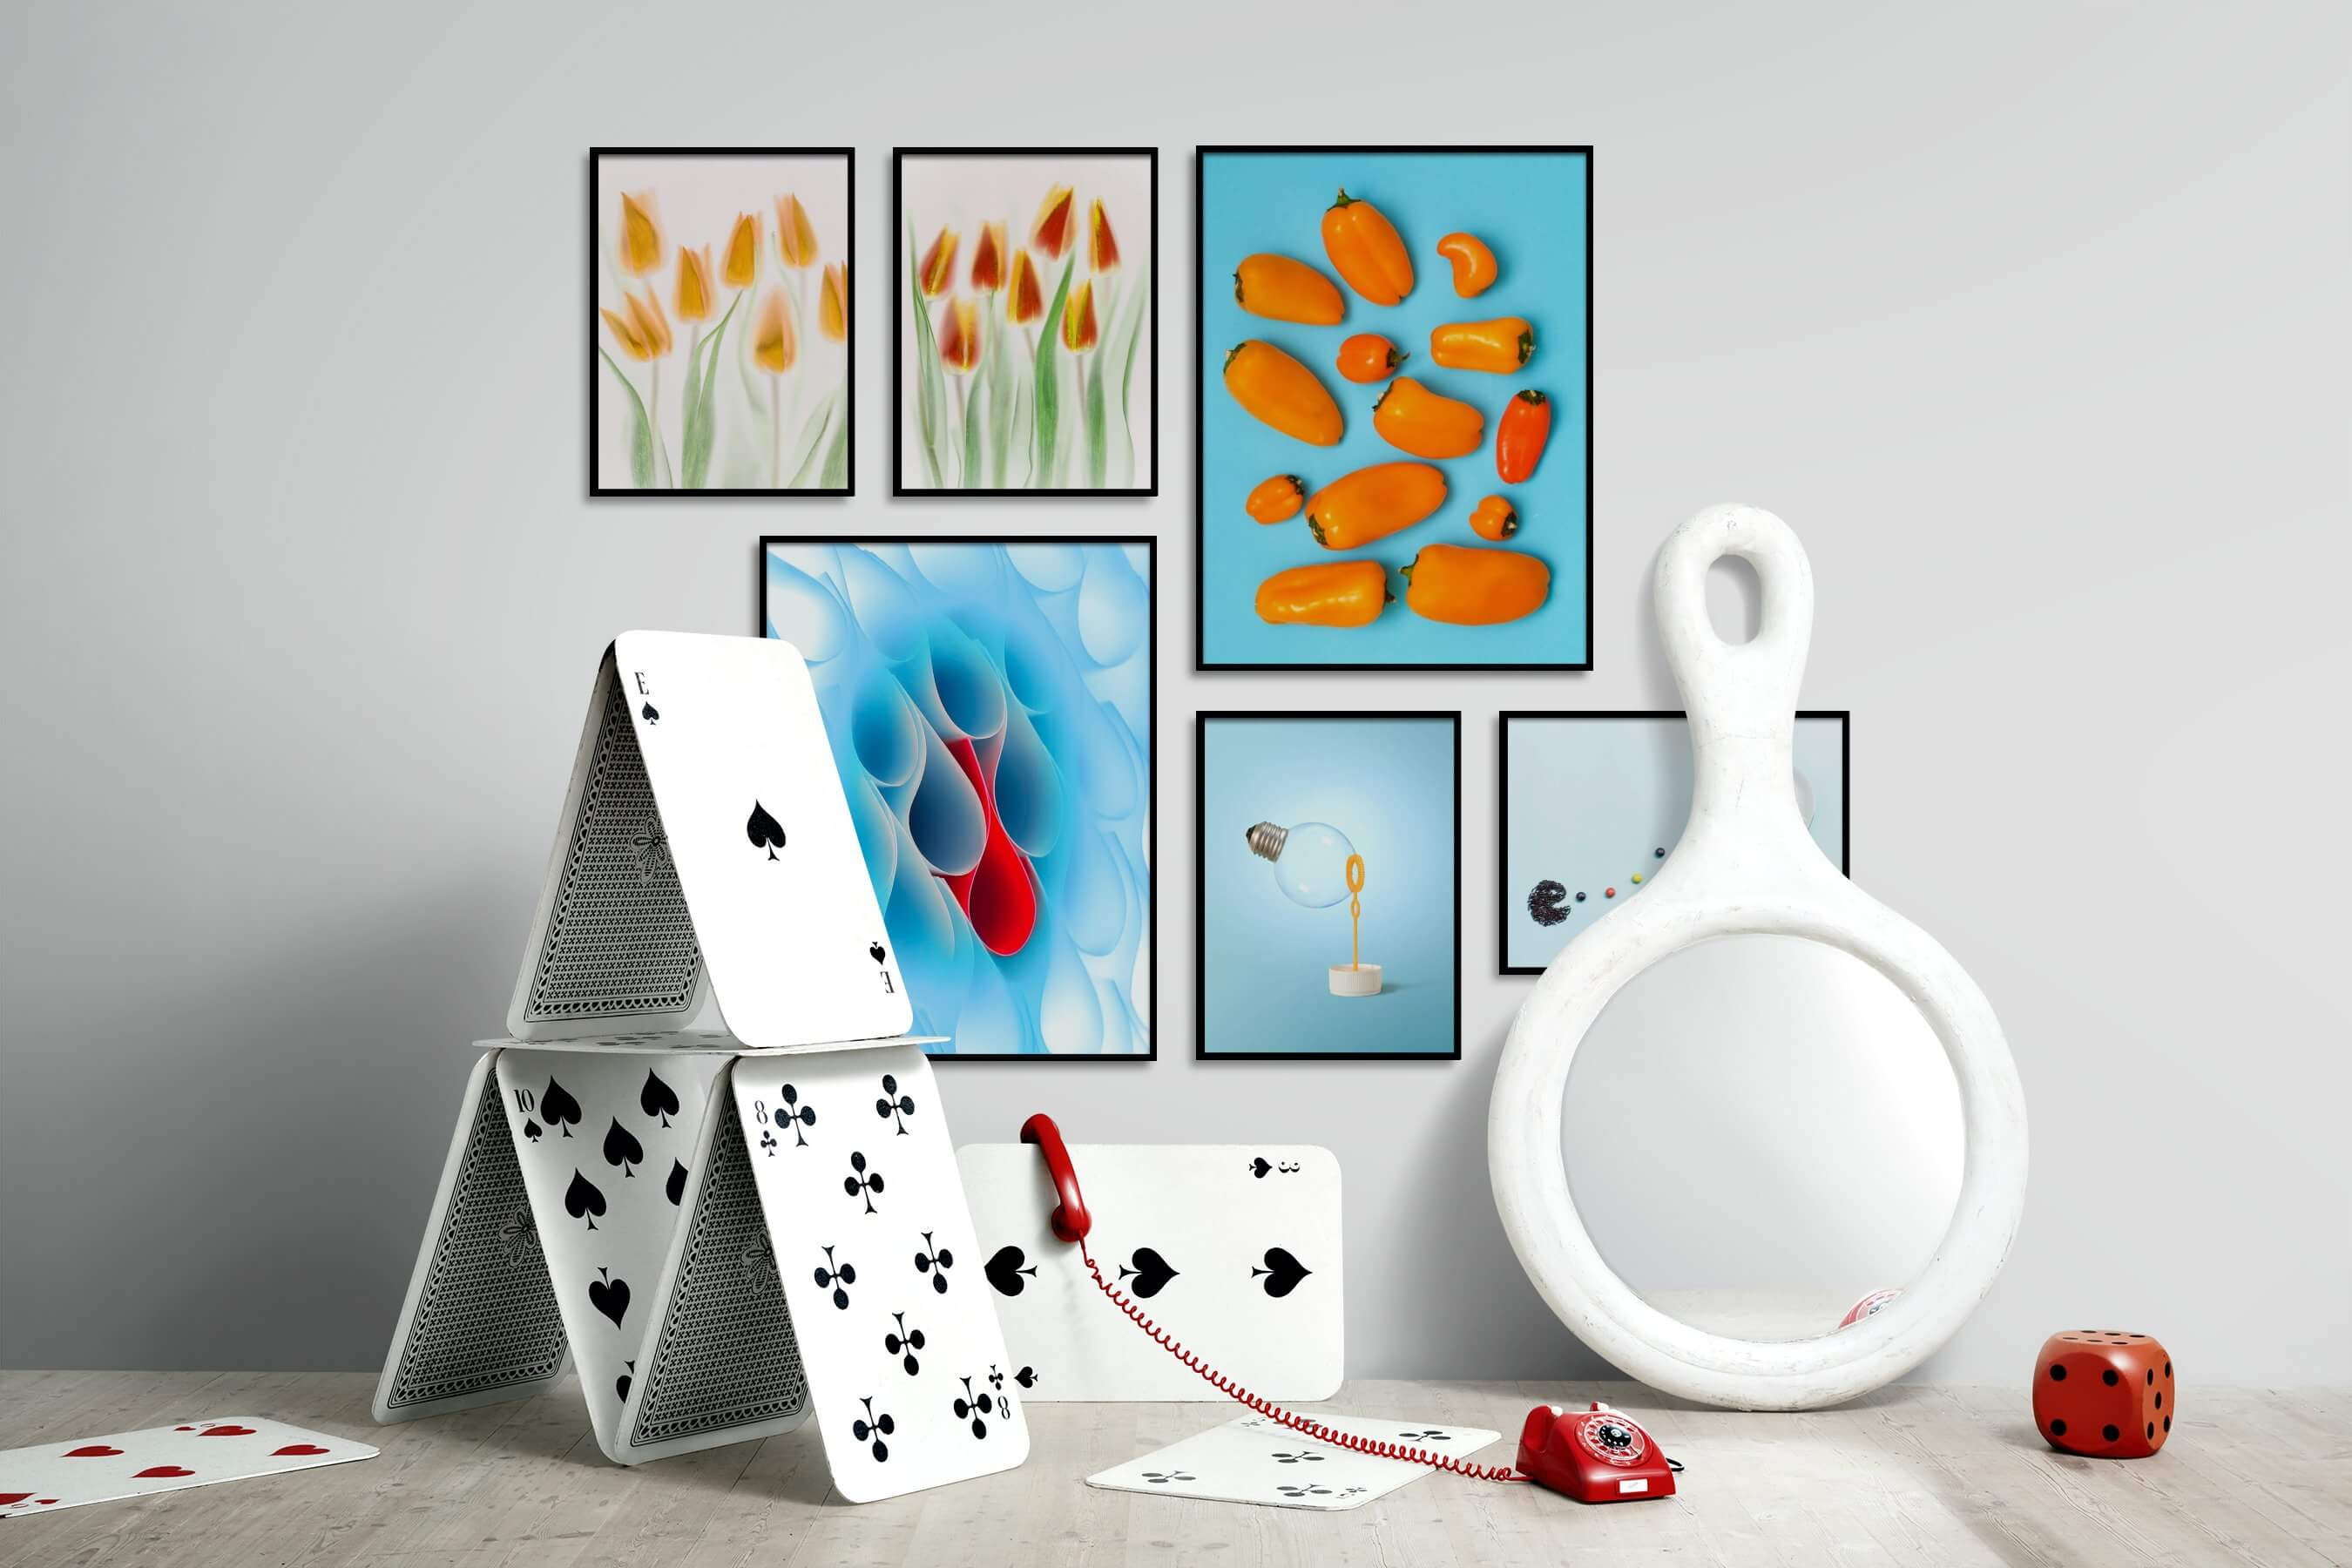 Gallery wall idea with six framed pictures arranged on a wall depicting Bright Tones, For the Moderate, Flowers & Plants, Colorful, and For the Minimalist